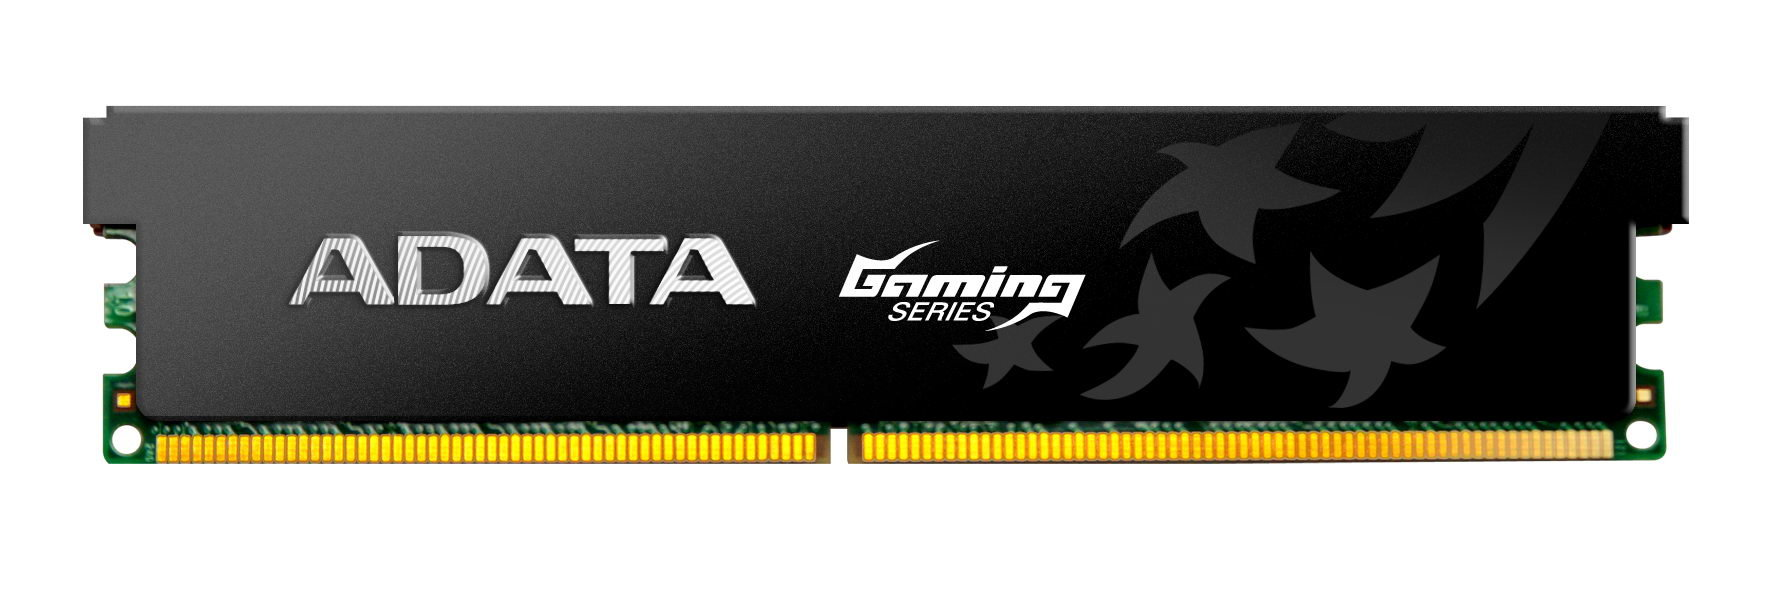 Adata DDR3L 1333G XPG Gaming Series